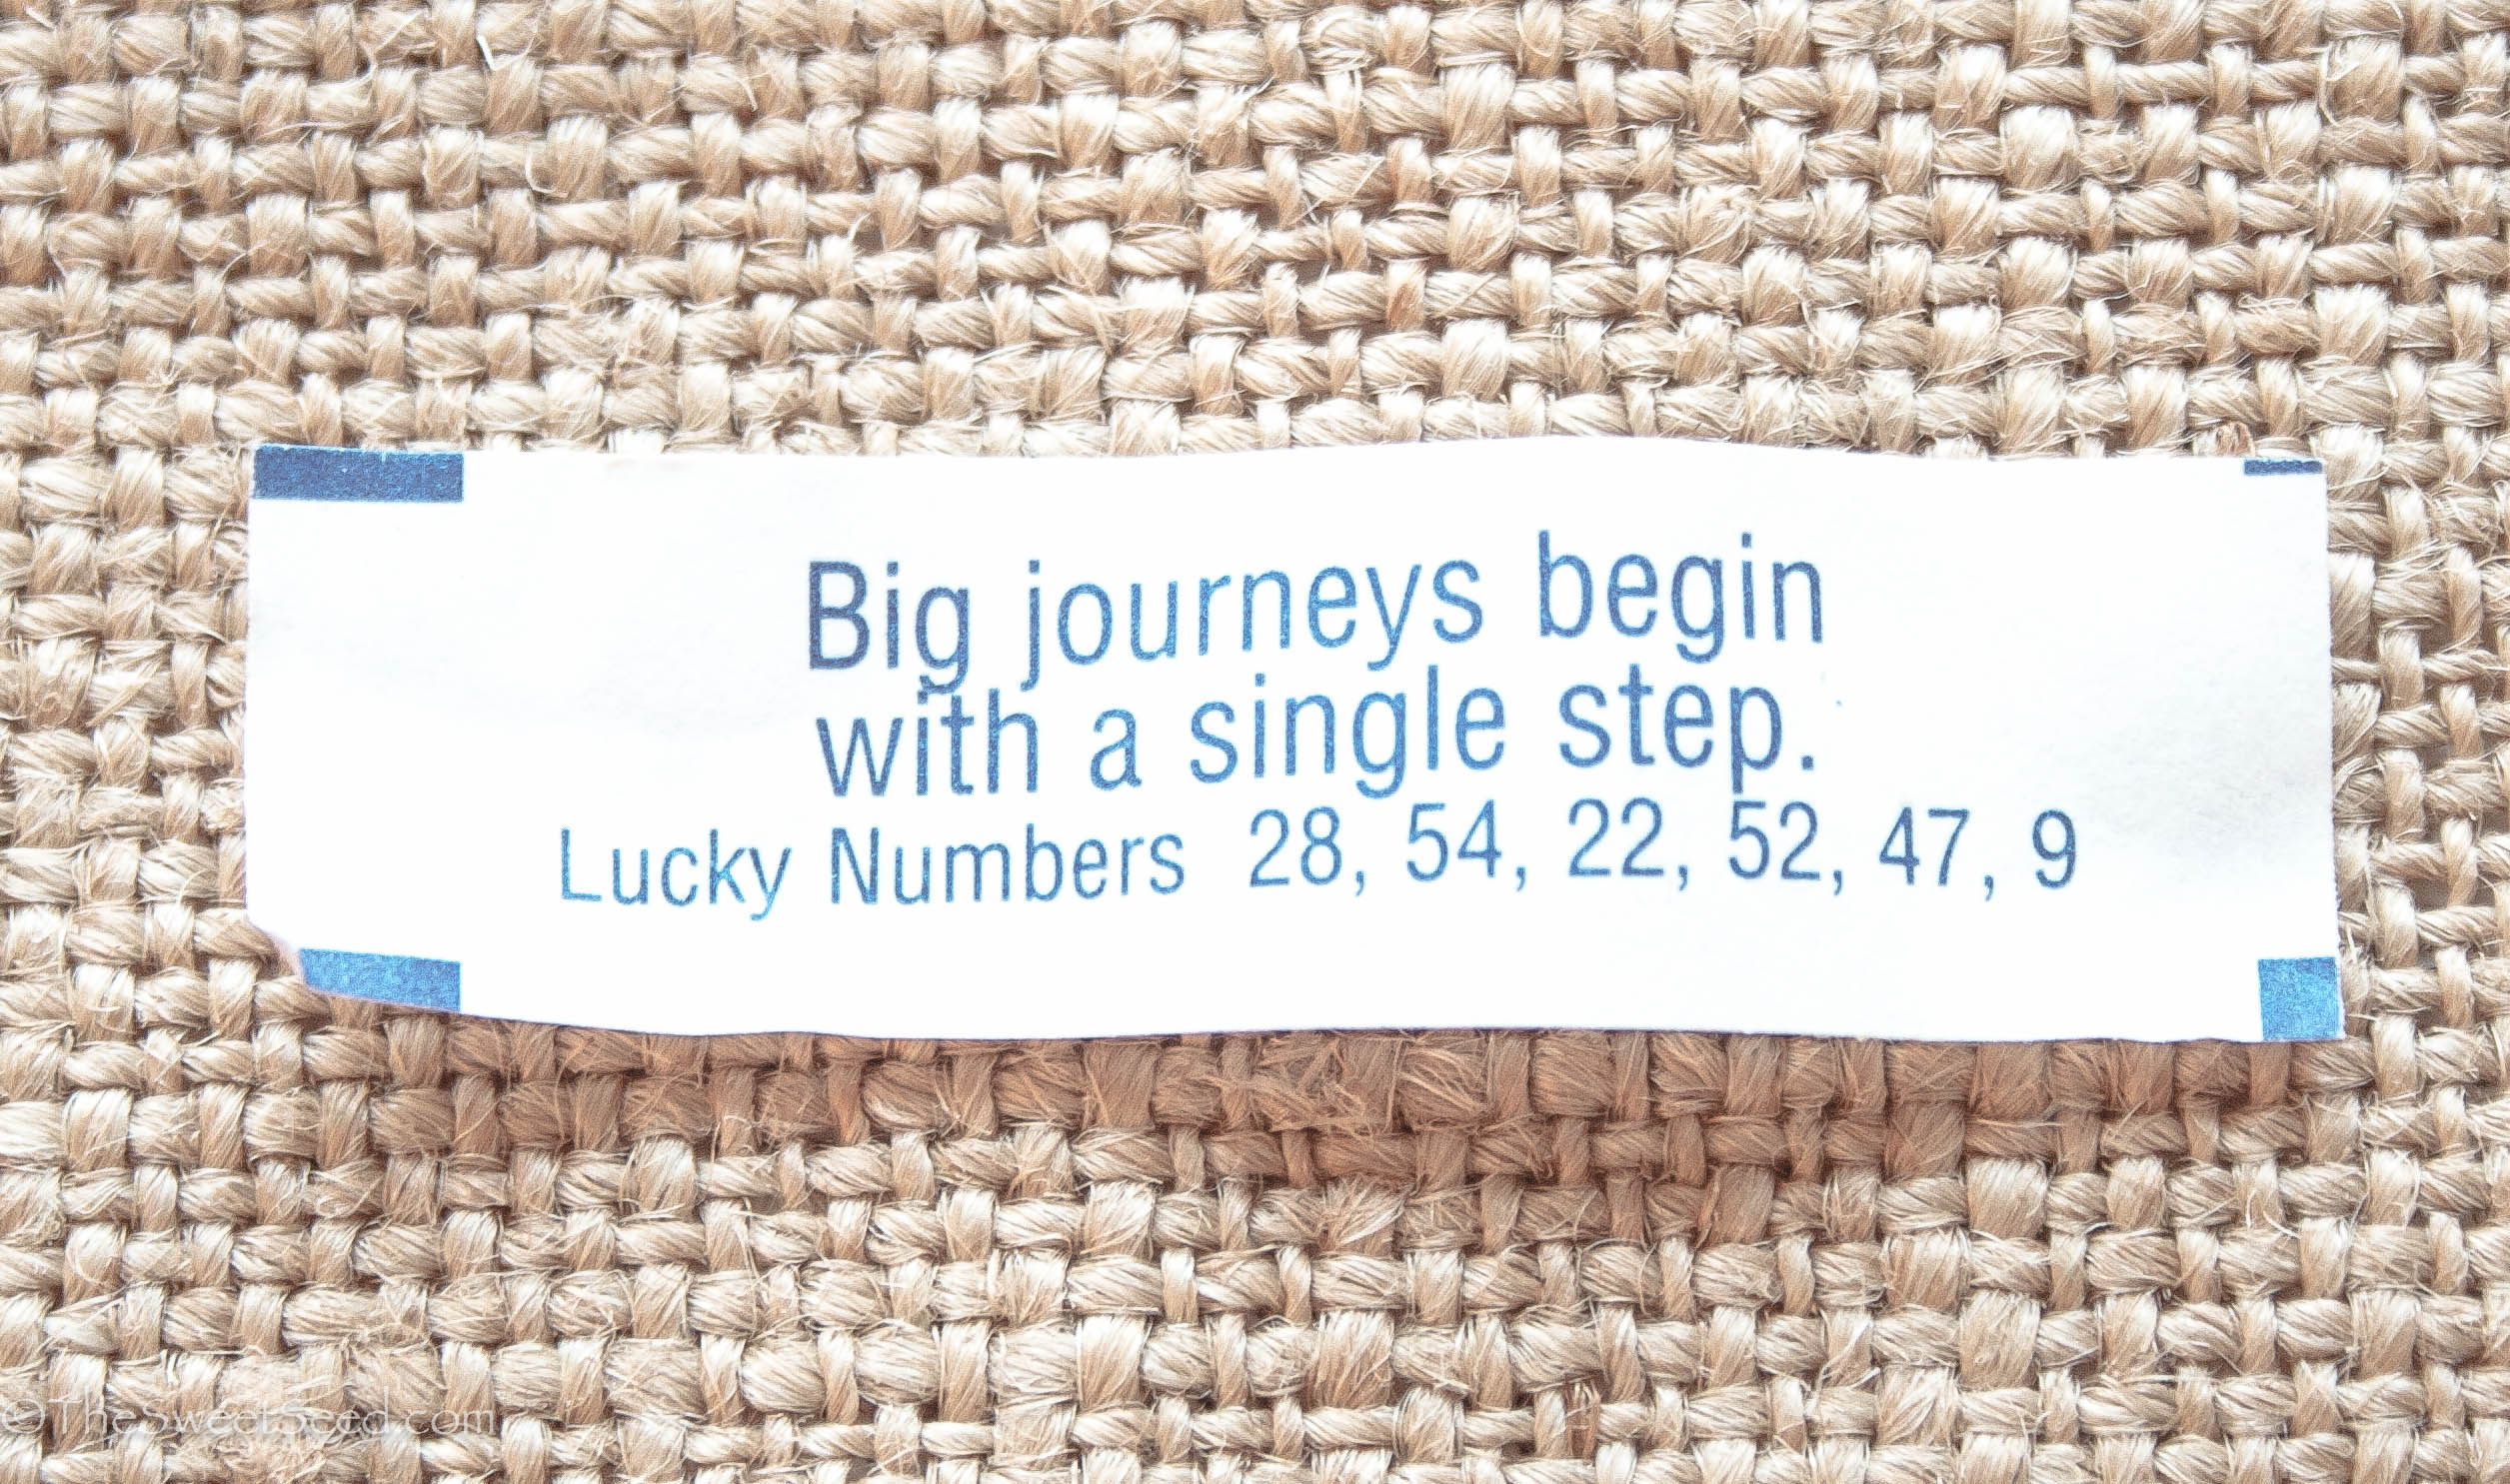 photograph relating to Printable Funny Fortune Cookie Sayings identified as 40 Suitable Chinese Fortune Cookies Quotations Sayings Concerning Existence